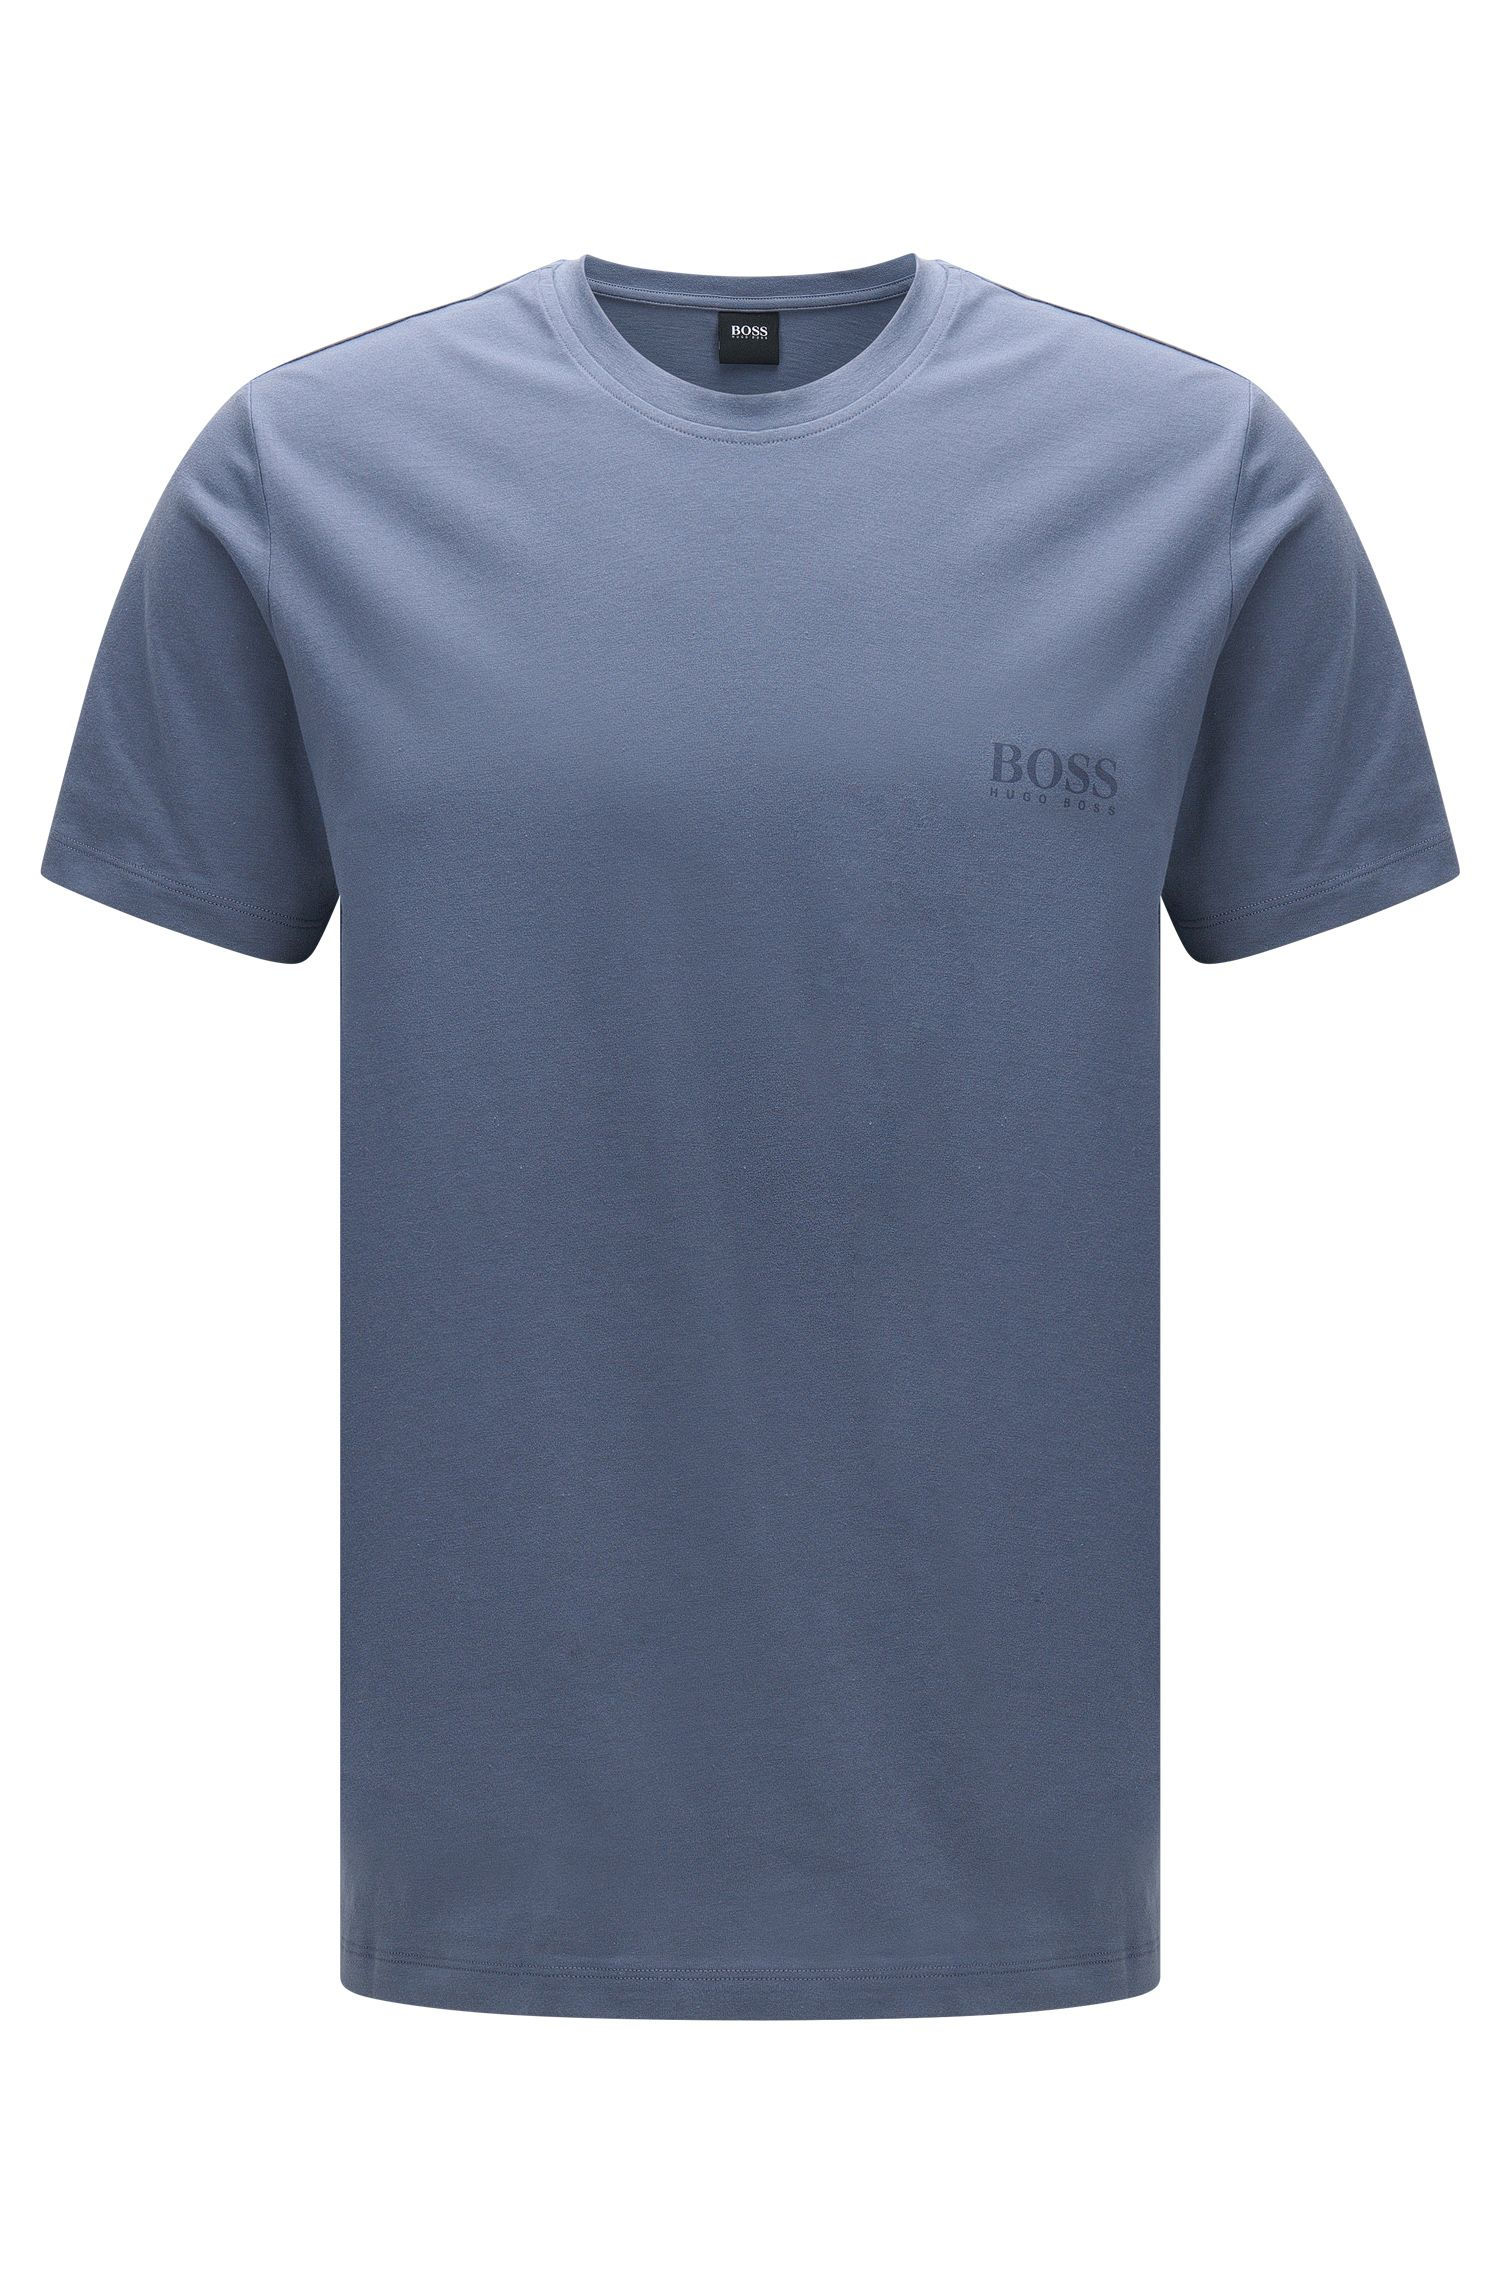 Unifarbenes Regular-Fit T-Shirt aus Baumwolle: 'T-Shirt RN 24'